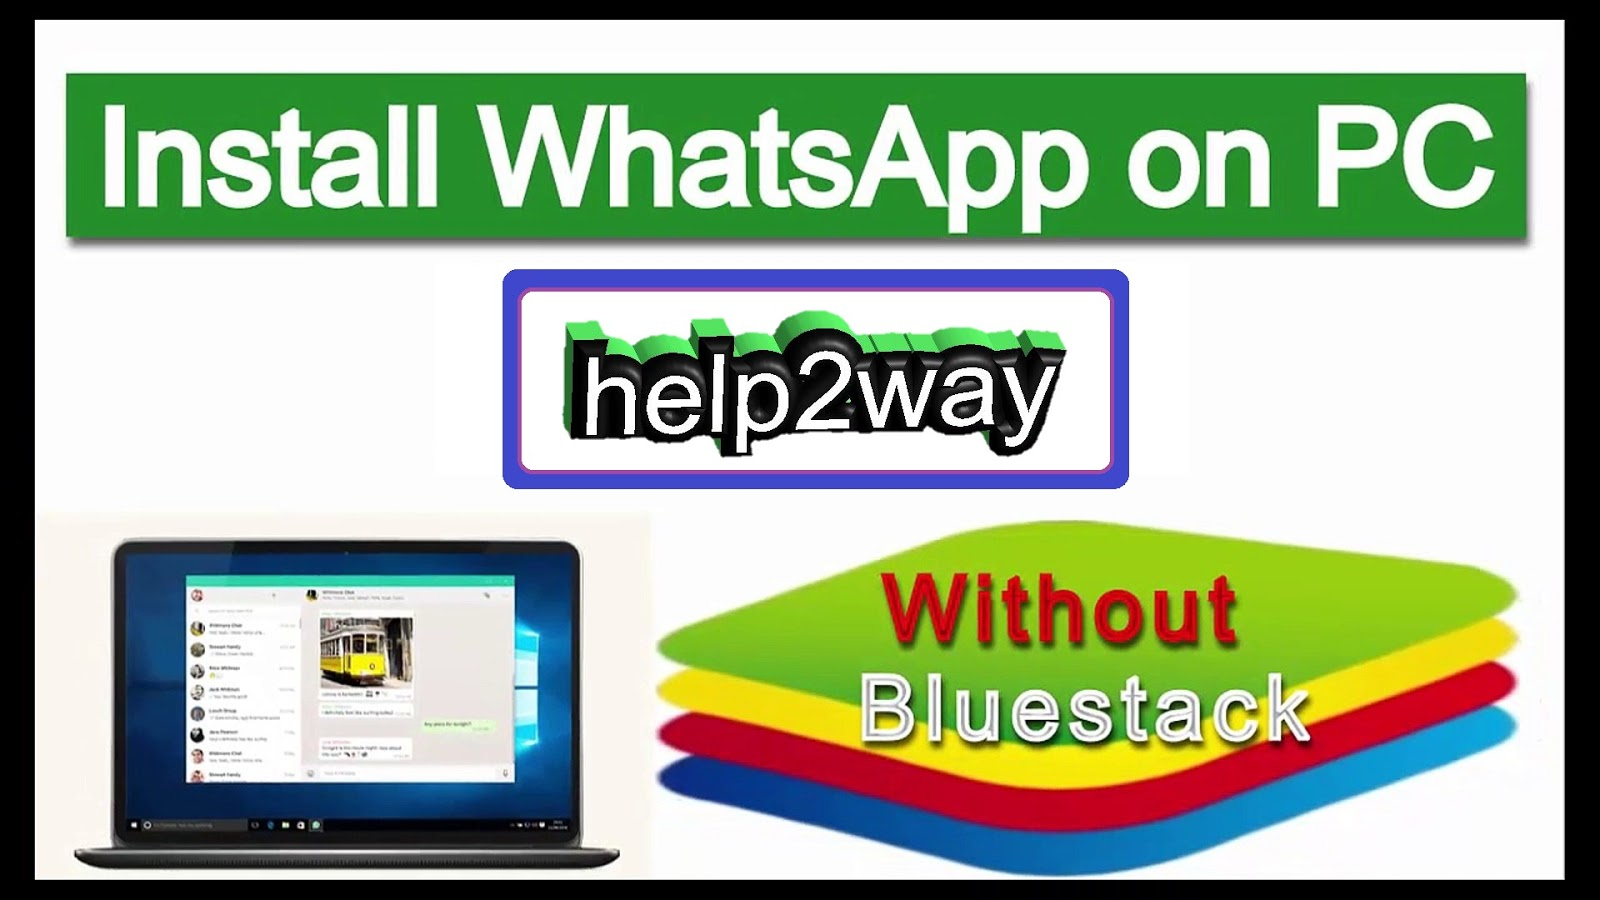 download whatsapp for computer windows 7